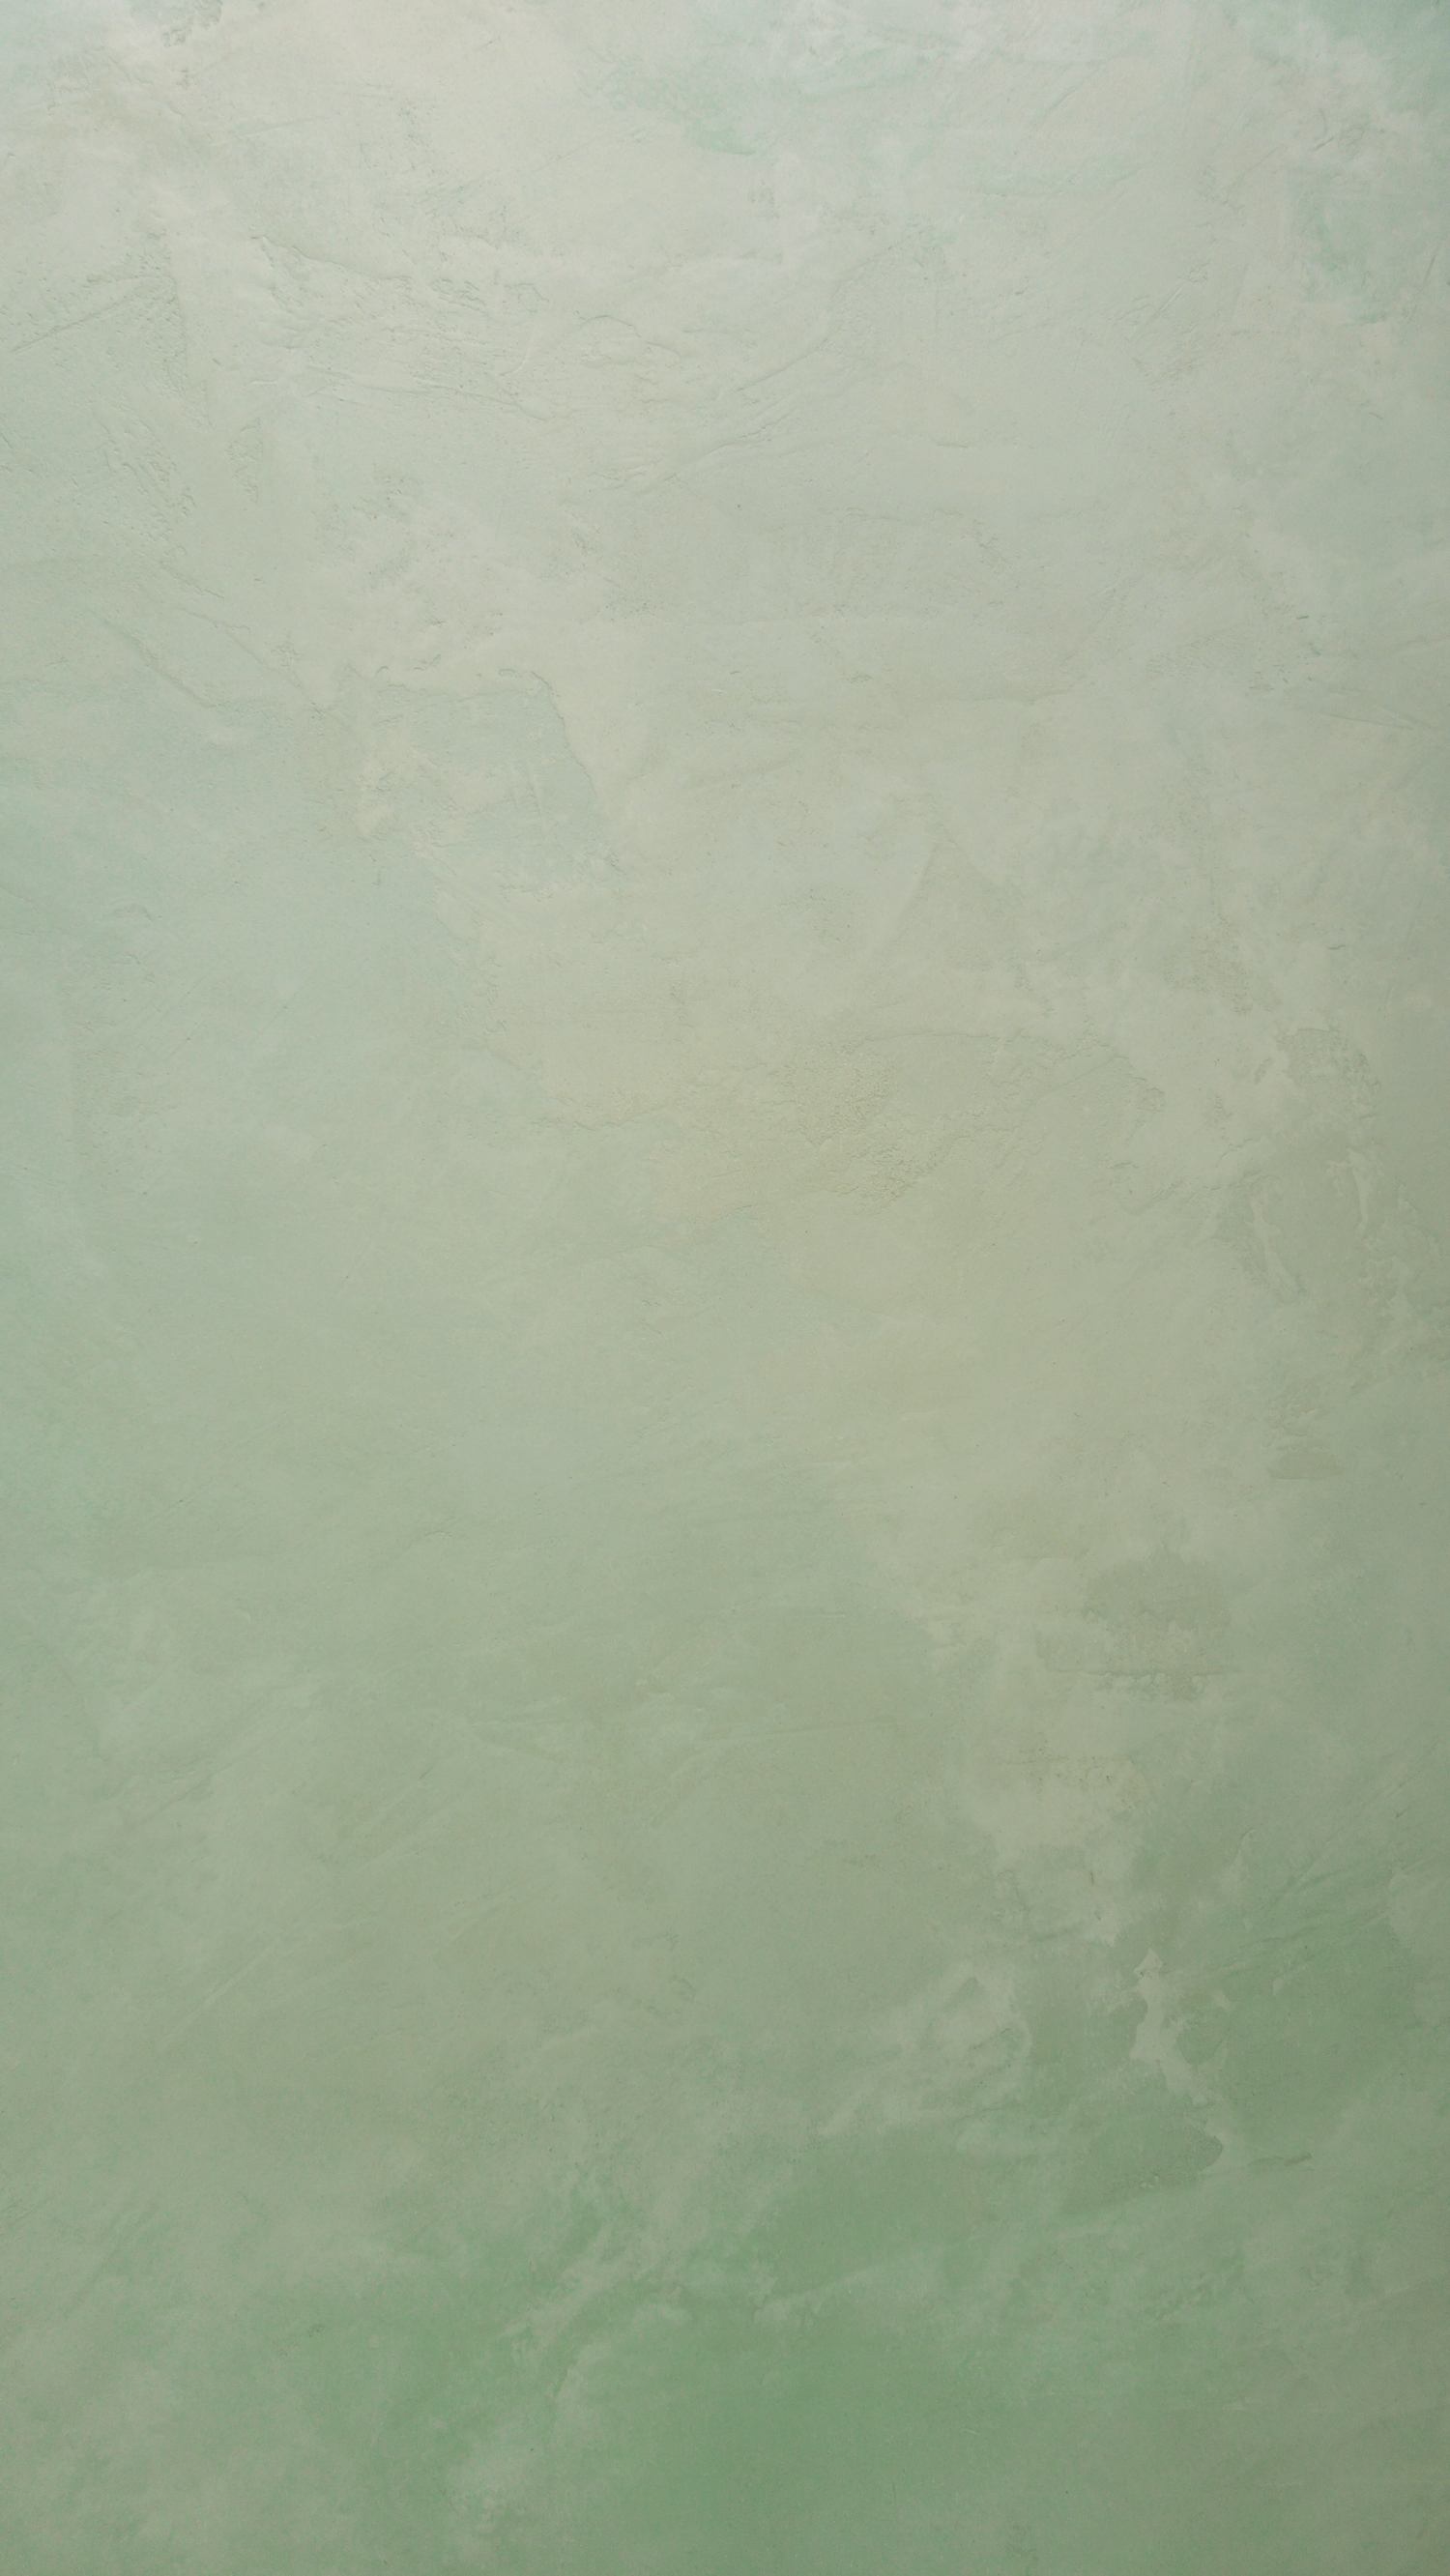 espanyolet_patina_wall_pigmented_microcement_color_wall.jpg